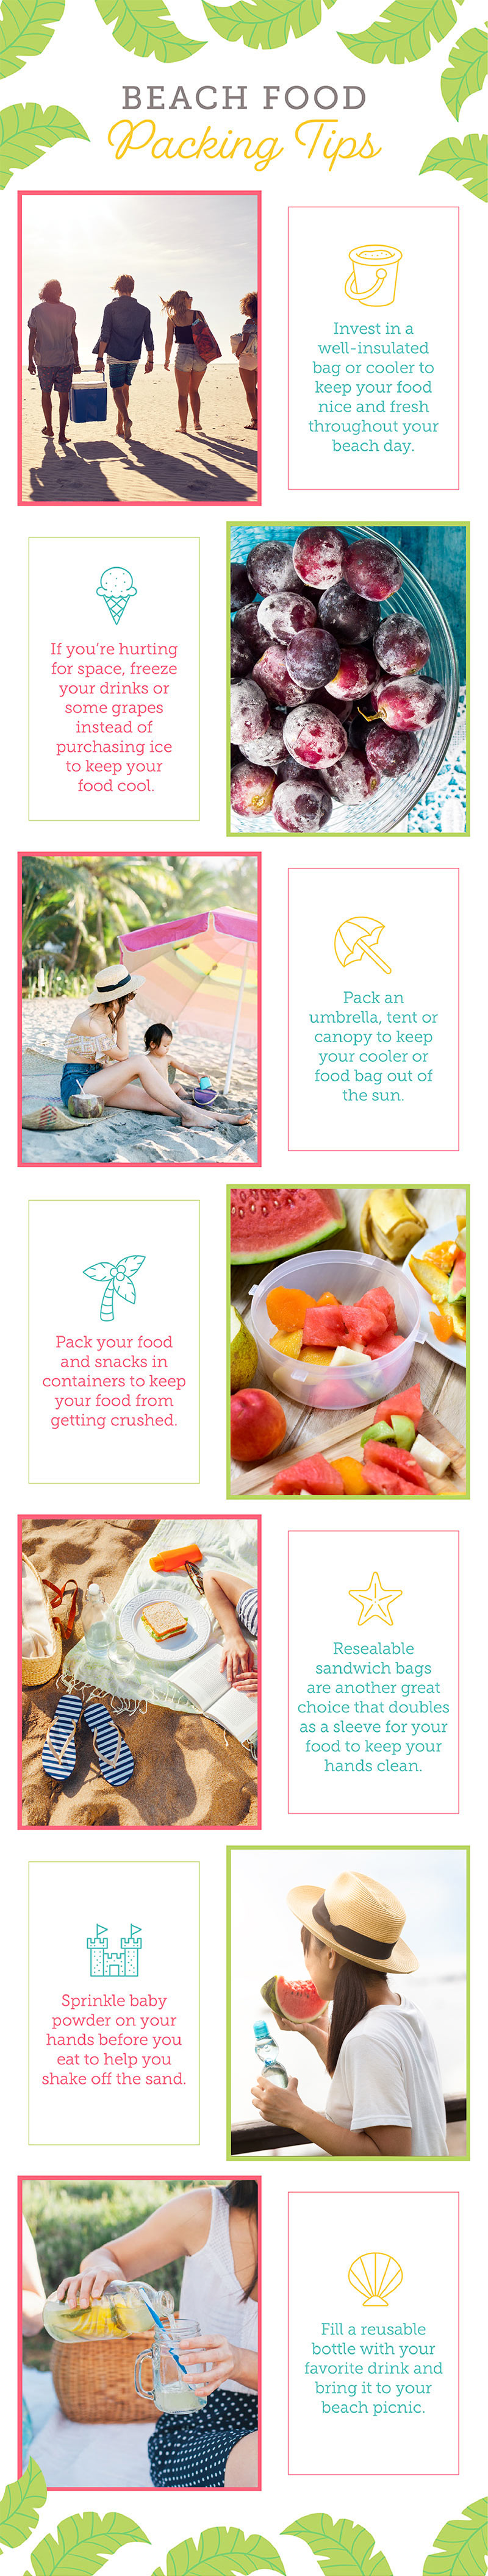 beach food packing tips